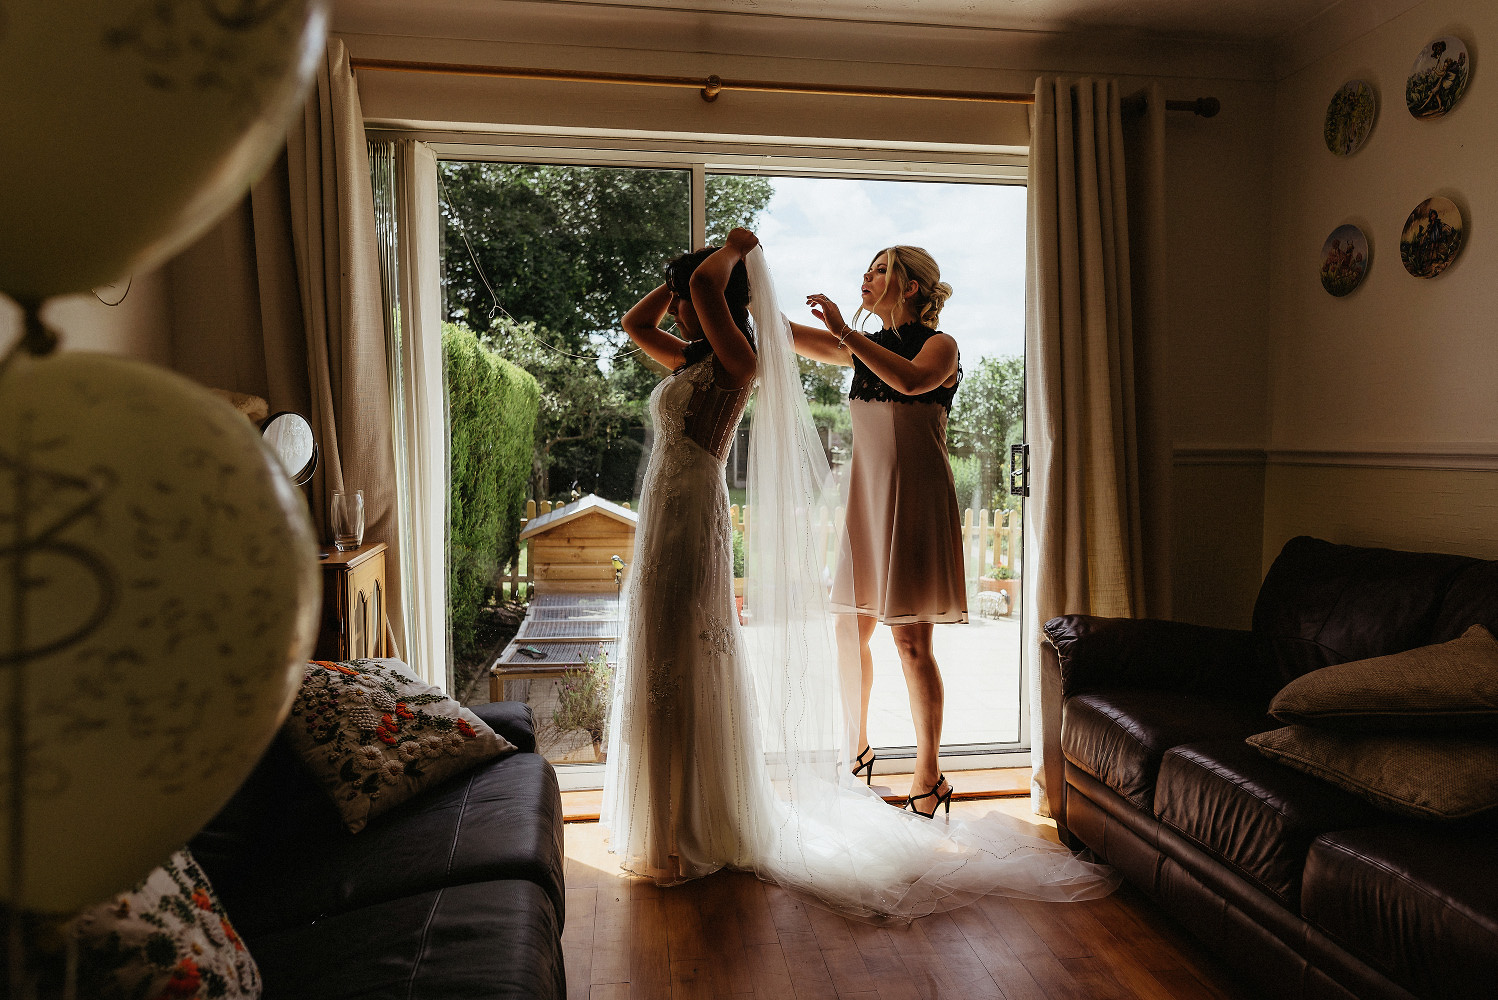 final touches to bridal preparation